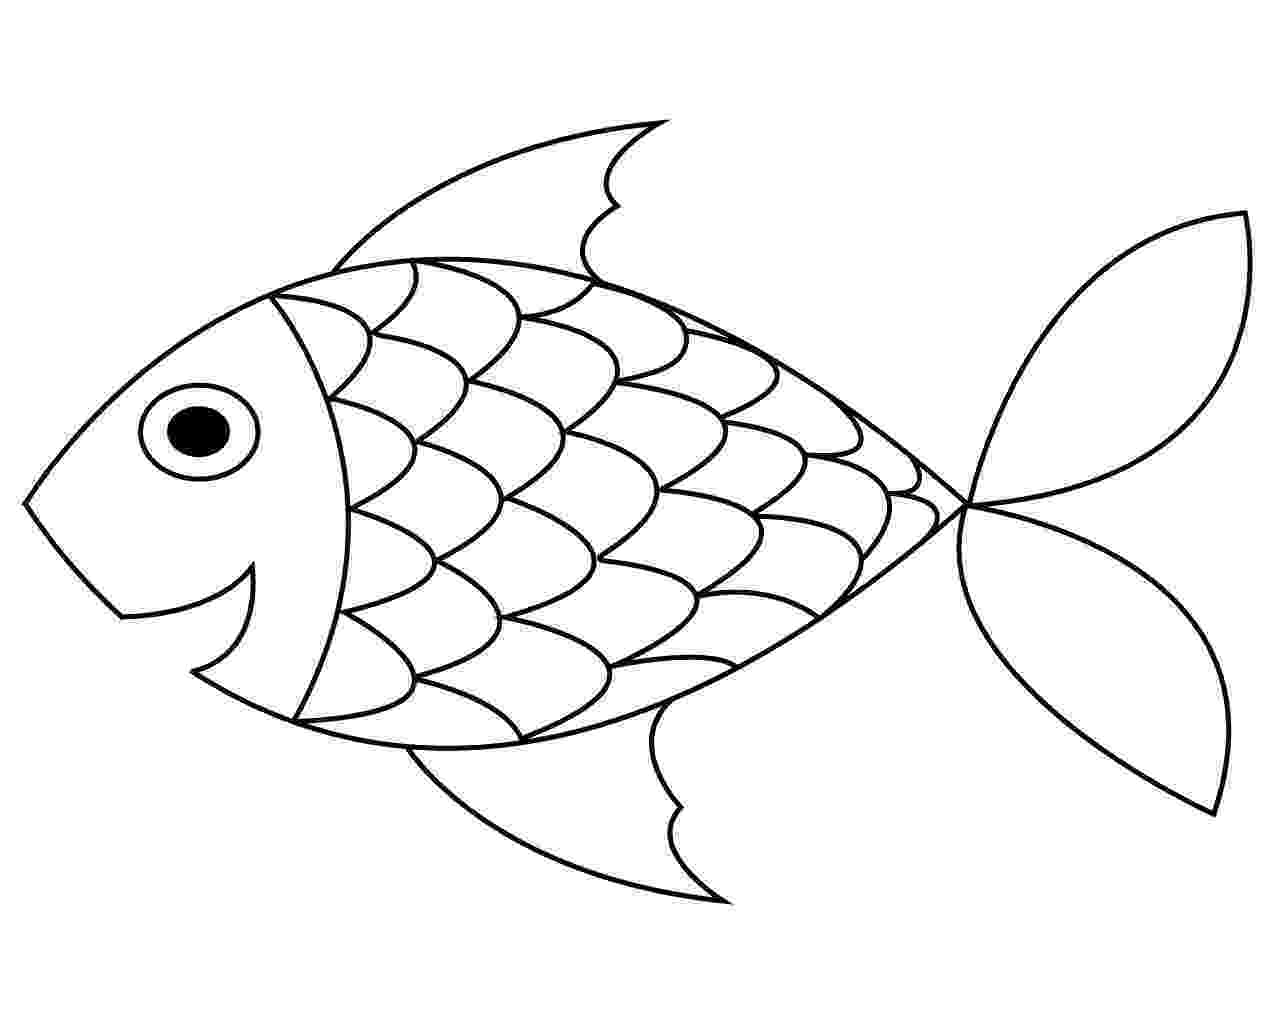 coloring picture fish free printable fish coloring pages for kids cool2bkids picture fish coloring 1 1